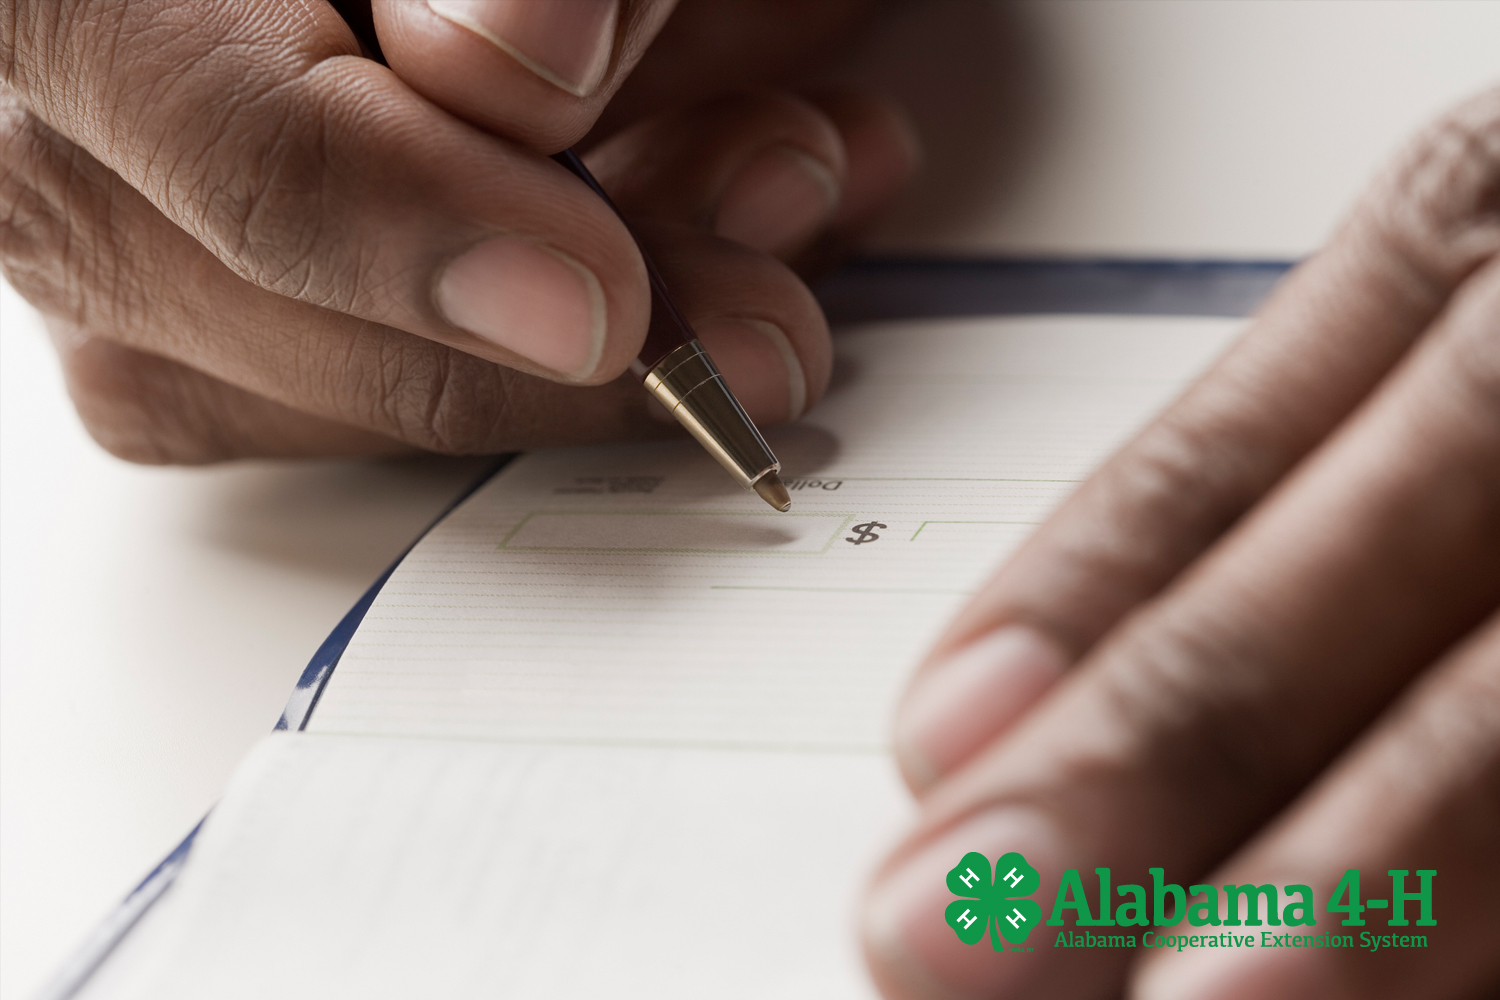 Alabama 4-H Foundation donation by mail; man writing check